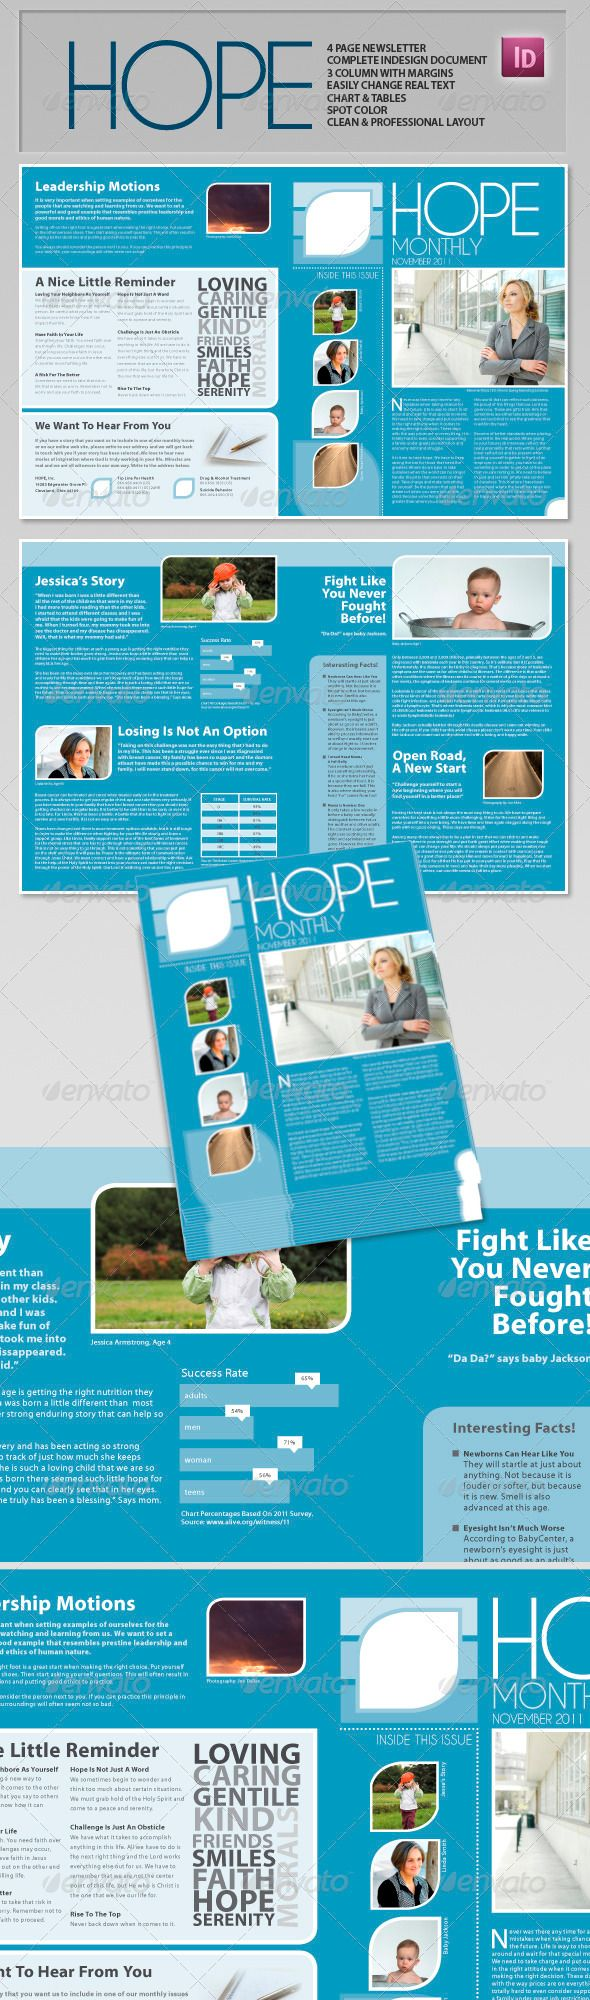 Hope - Clean Professional Newsletter | Pinterest | Newsletter ...